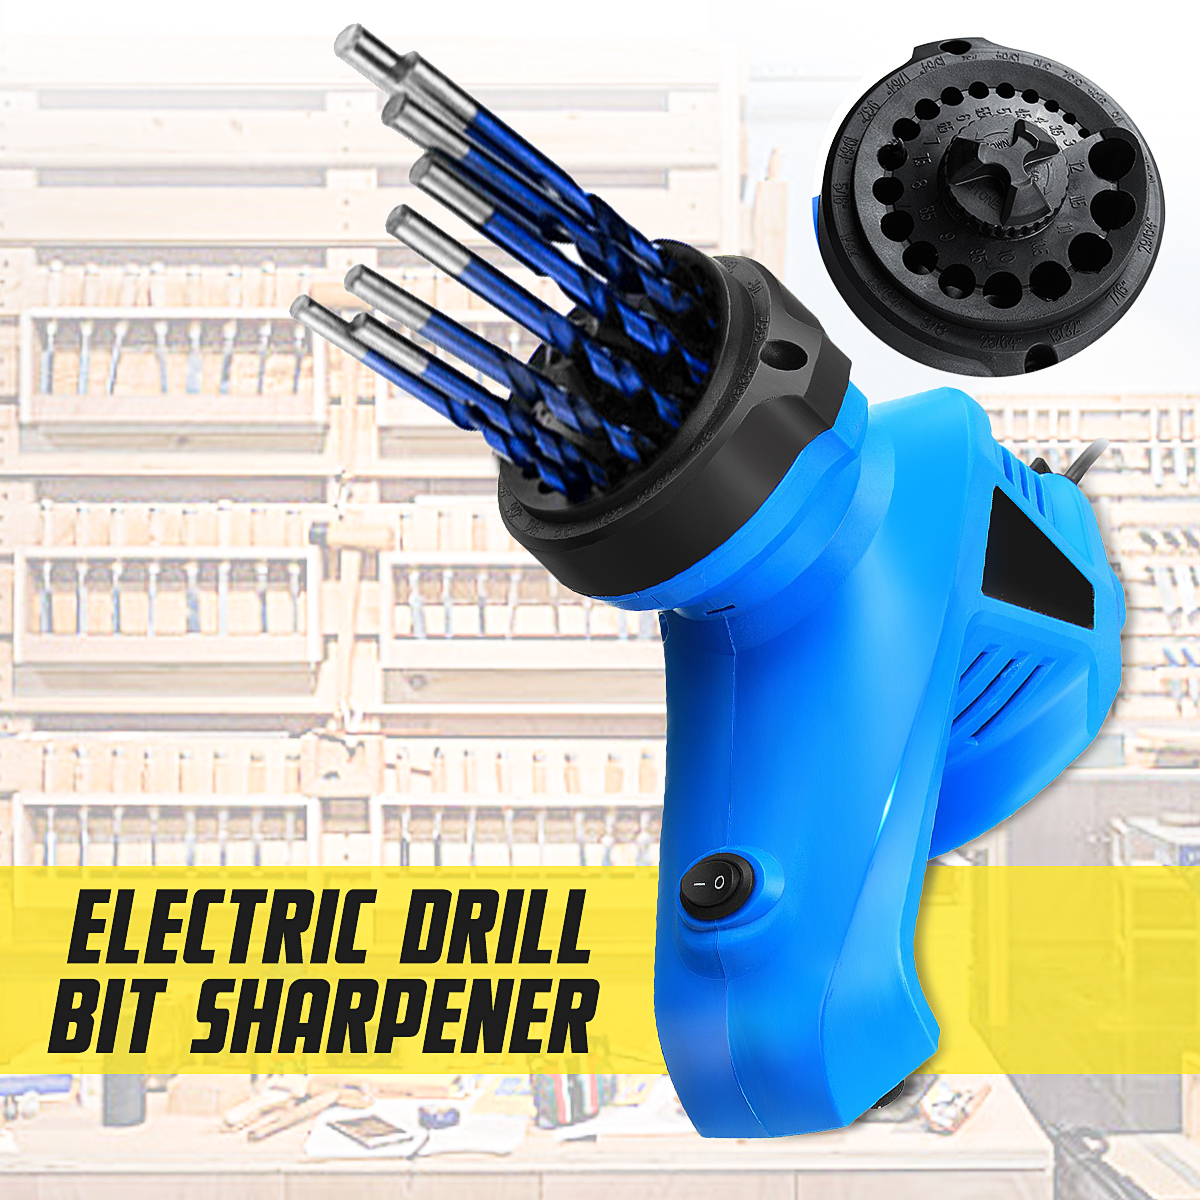 Electric Drill Bit Sharpener Twist Drill Grinding Machine Drill Grinder Drill Milling Machine 3-12mm 220V